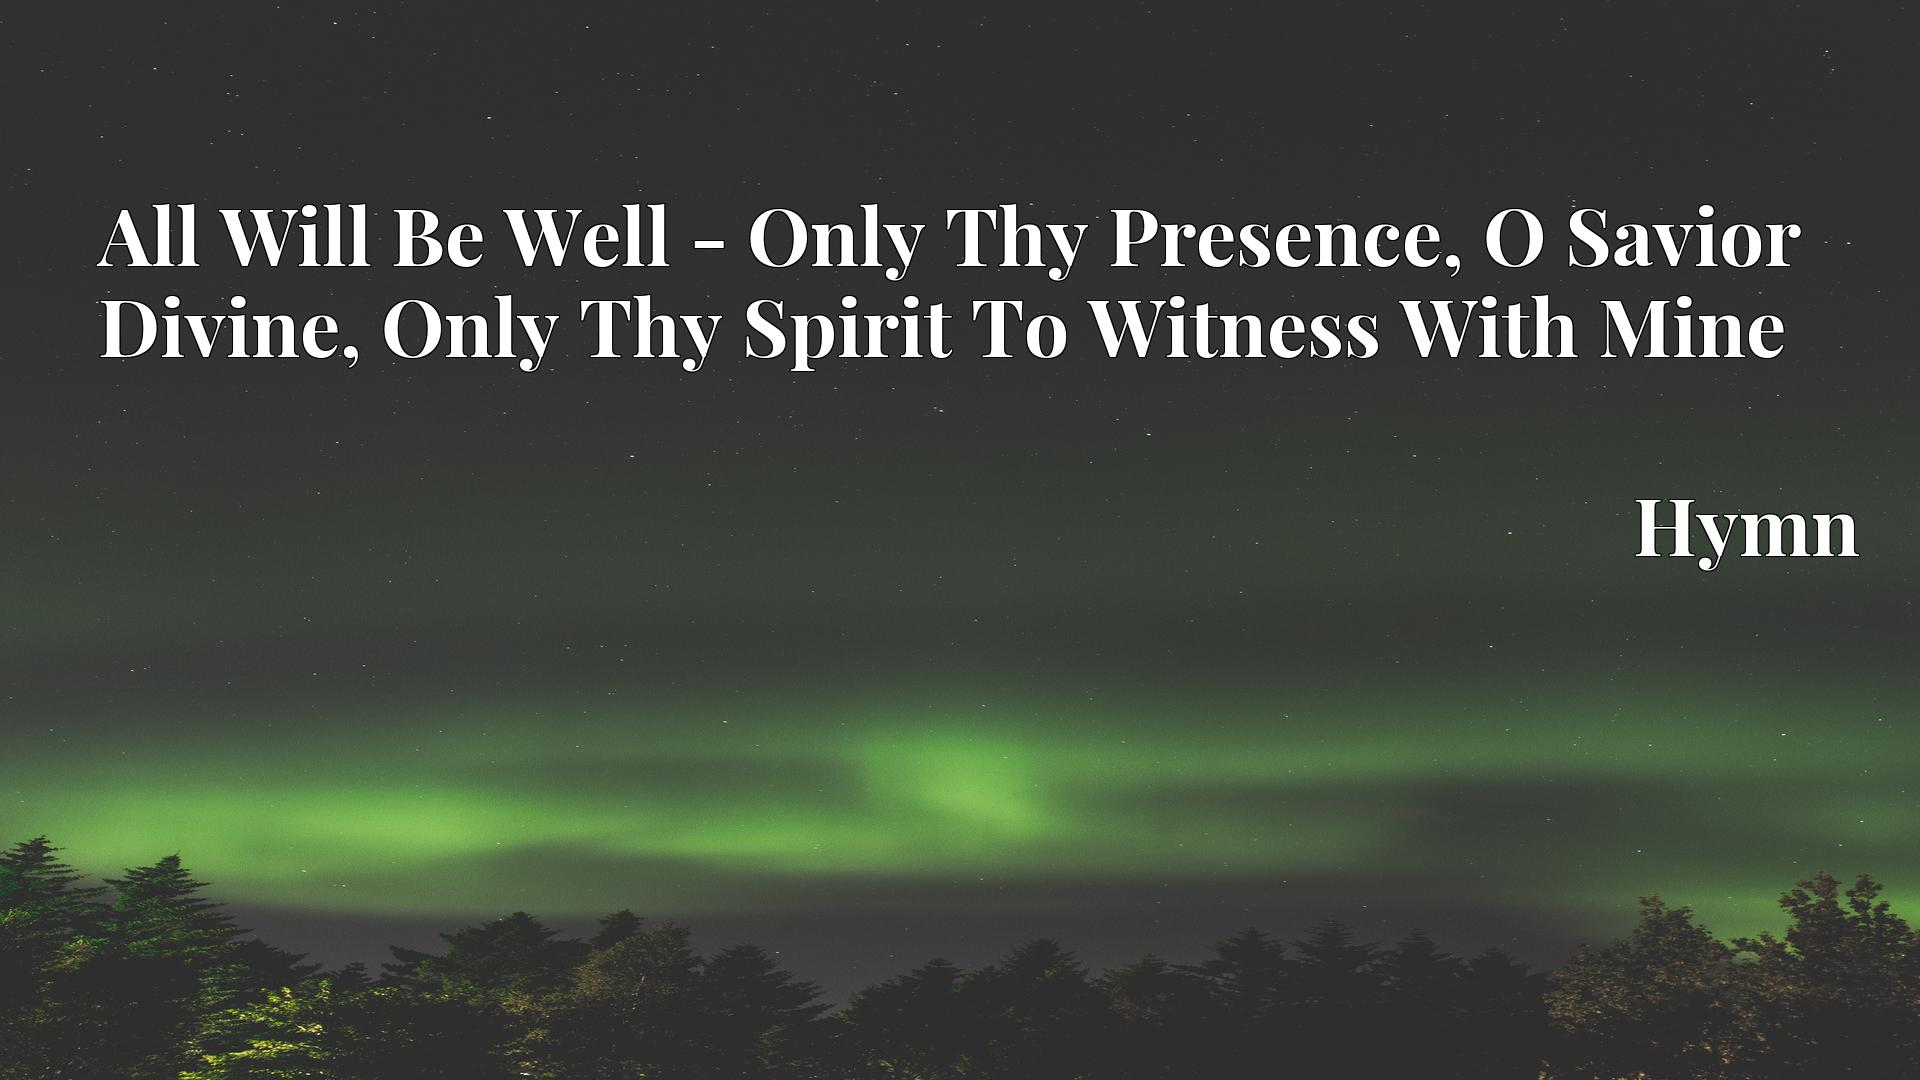 All Will Be Well - Only Thy Presence, O Savior Divine, Only Thy Spirit To Witness With Mine - Hymn